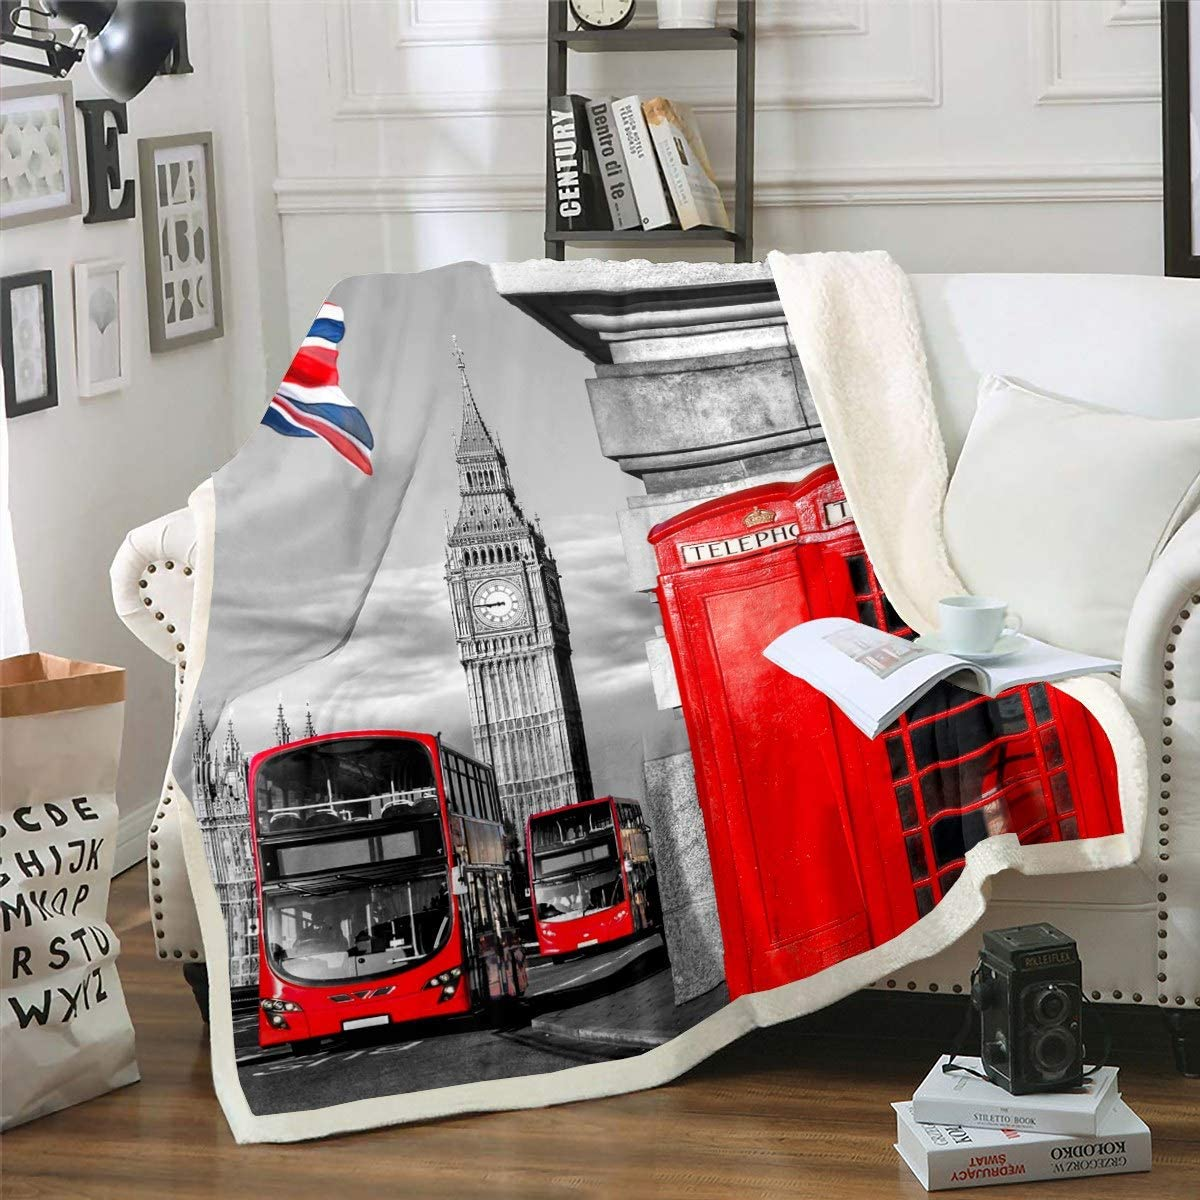 London Fleece Throw Blanket Red Popular shop is the In a popularity lowest price challenge Phone Blank Booth Sherpa Printed